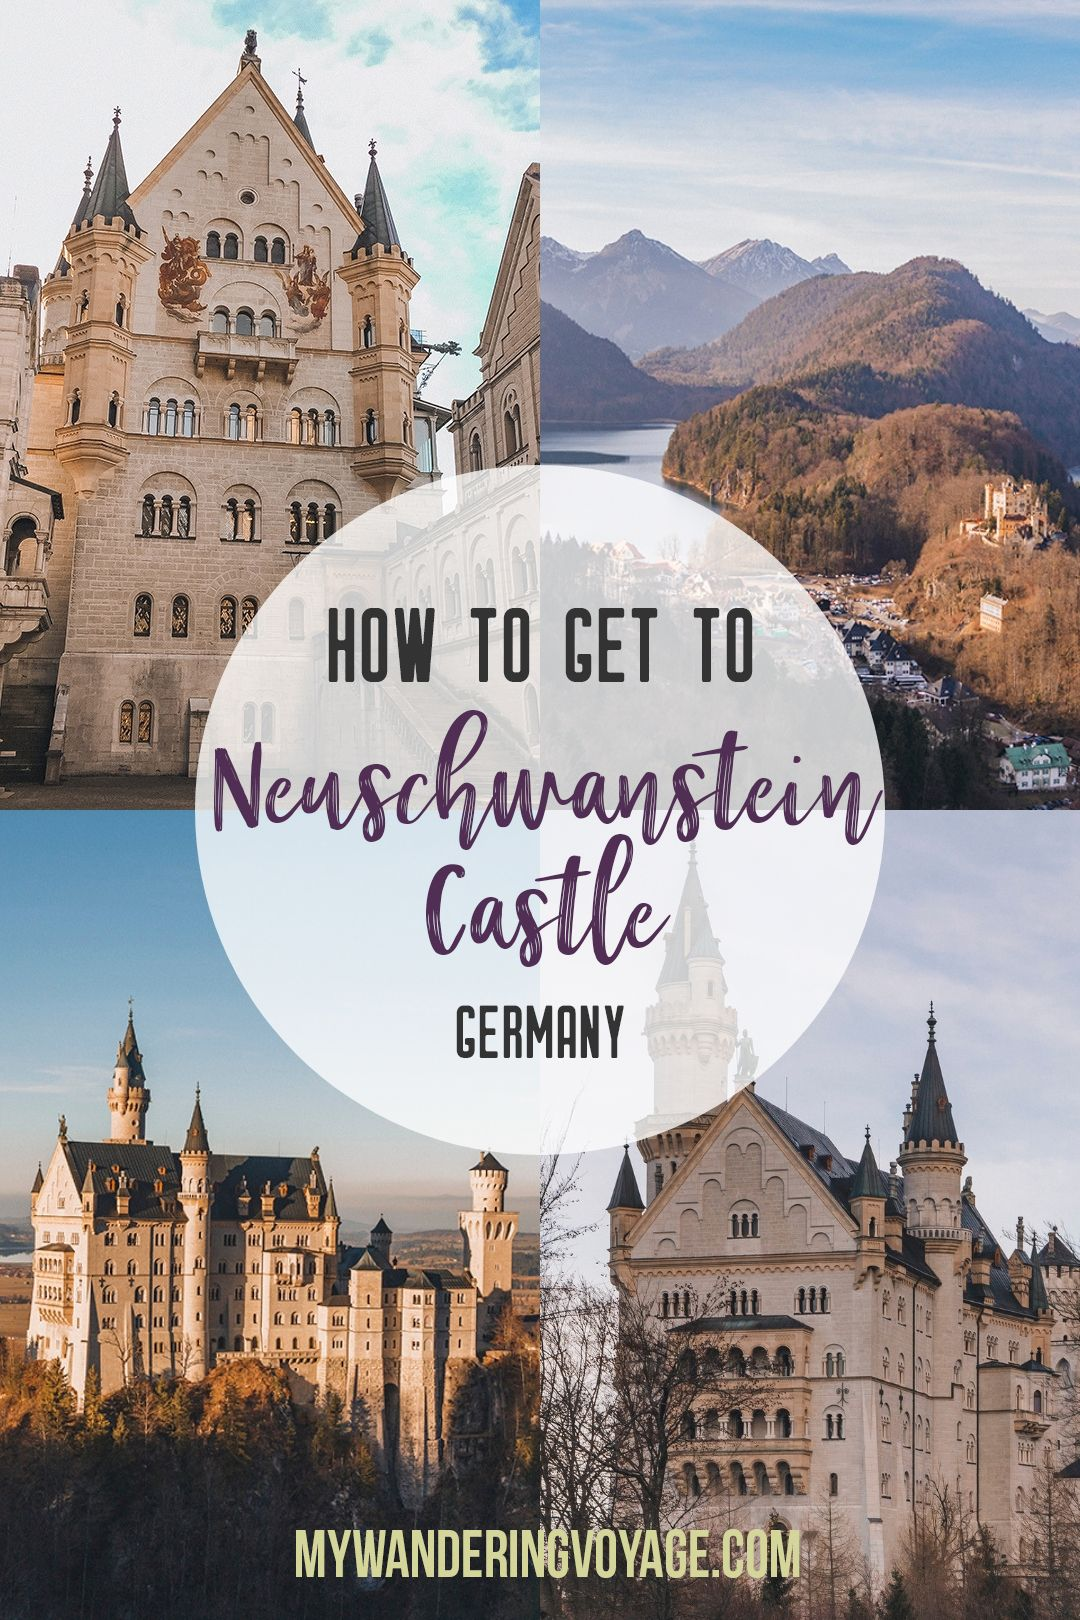 4ff2805e68a6e32bc2a129a94f87eab6 - How Do You Get To Neuschwanstein Castle From Munich